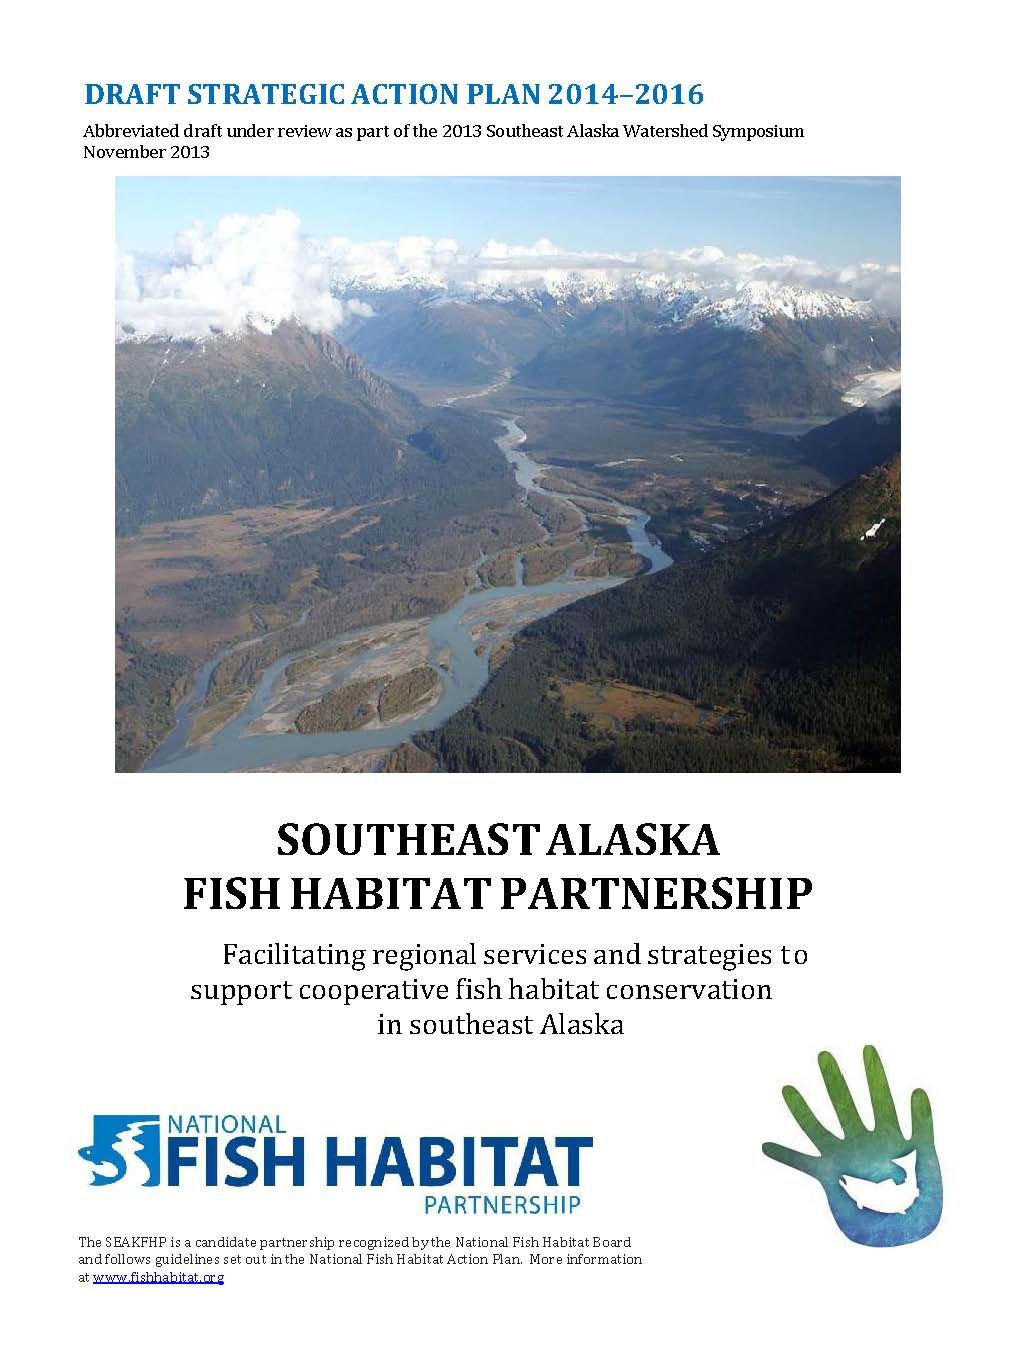 SEAKFHP shares draft strategic action plan at the 2013 SE AK Watershed Symposium and is looking for regional feedback!